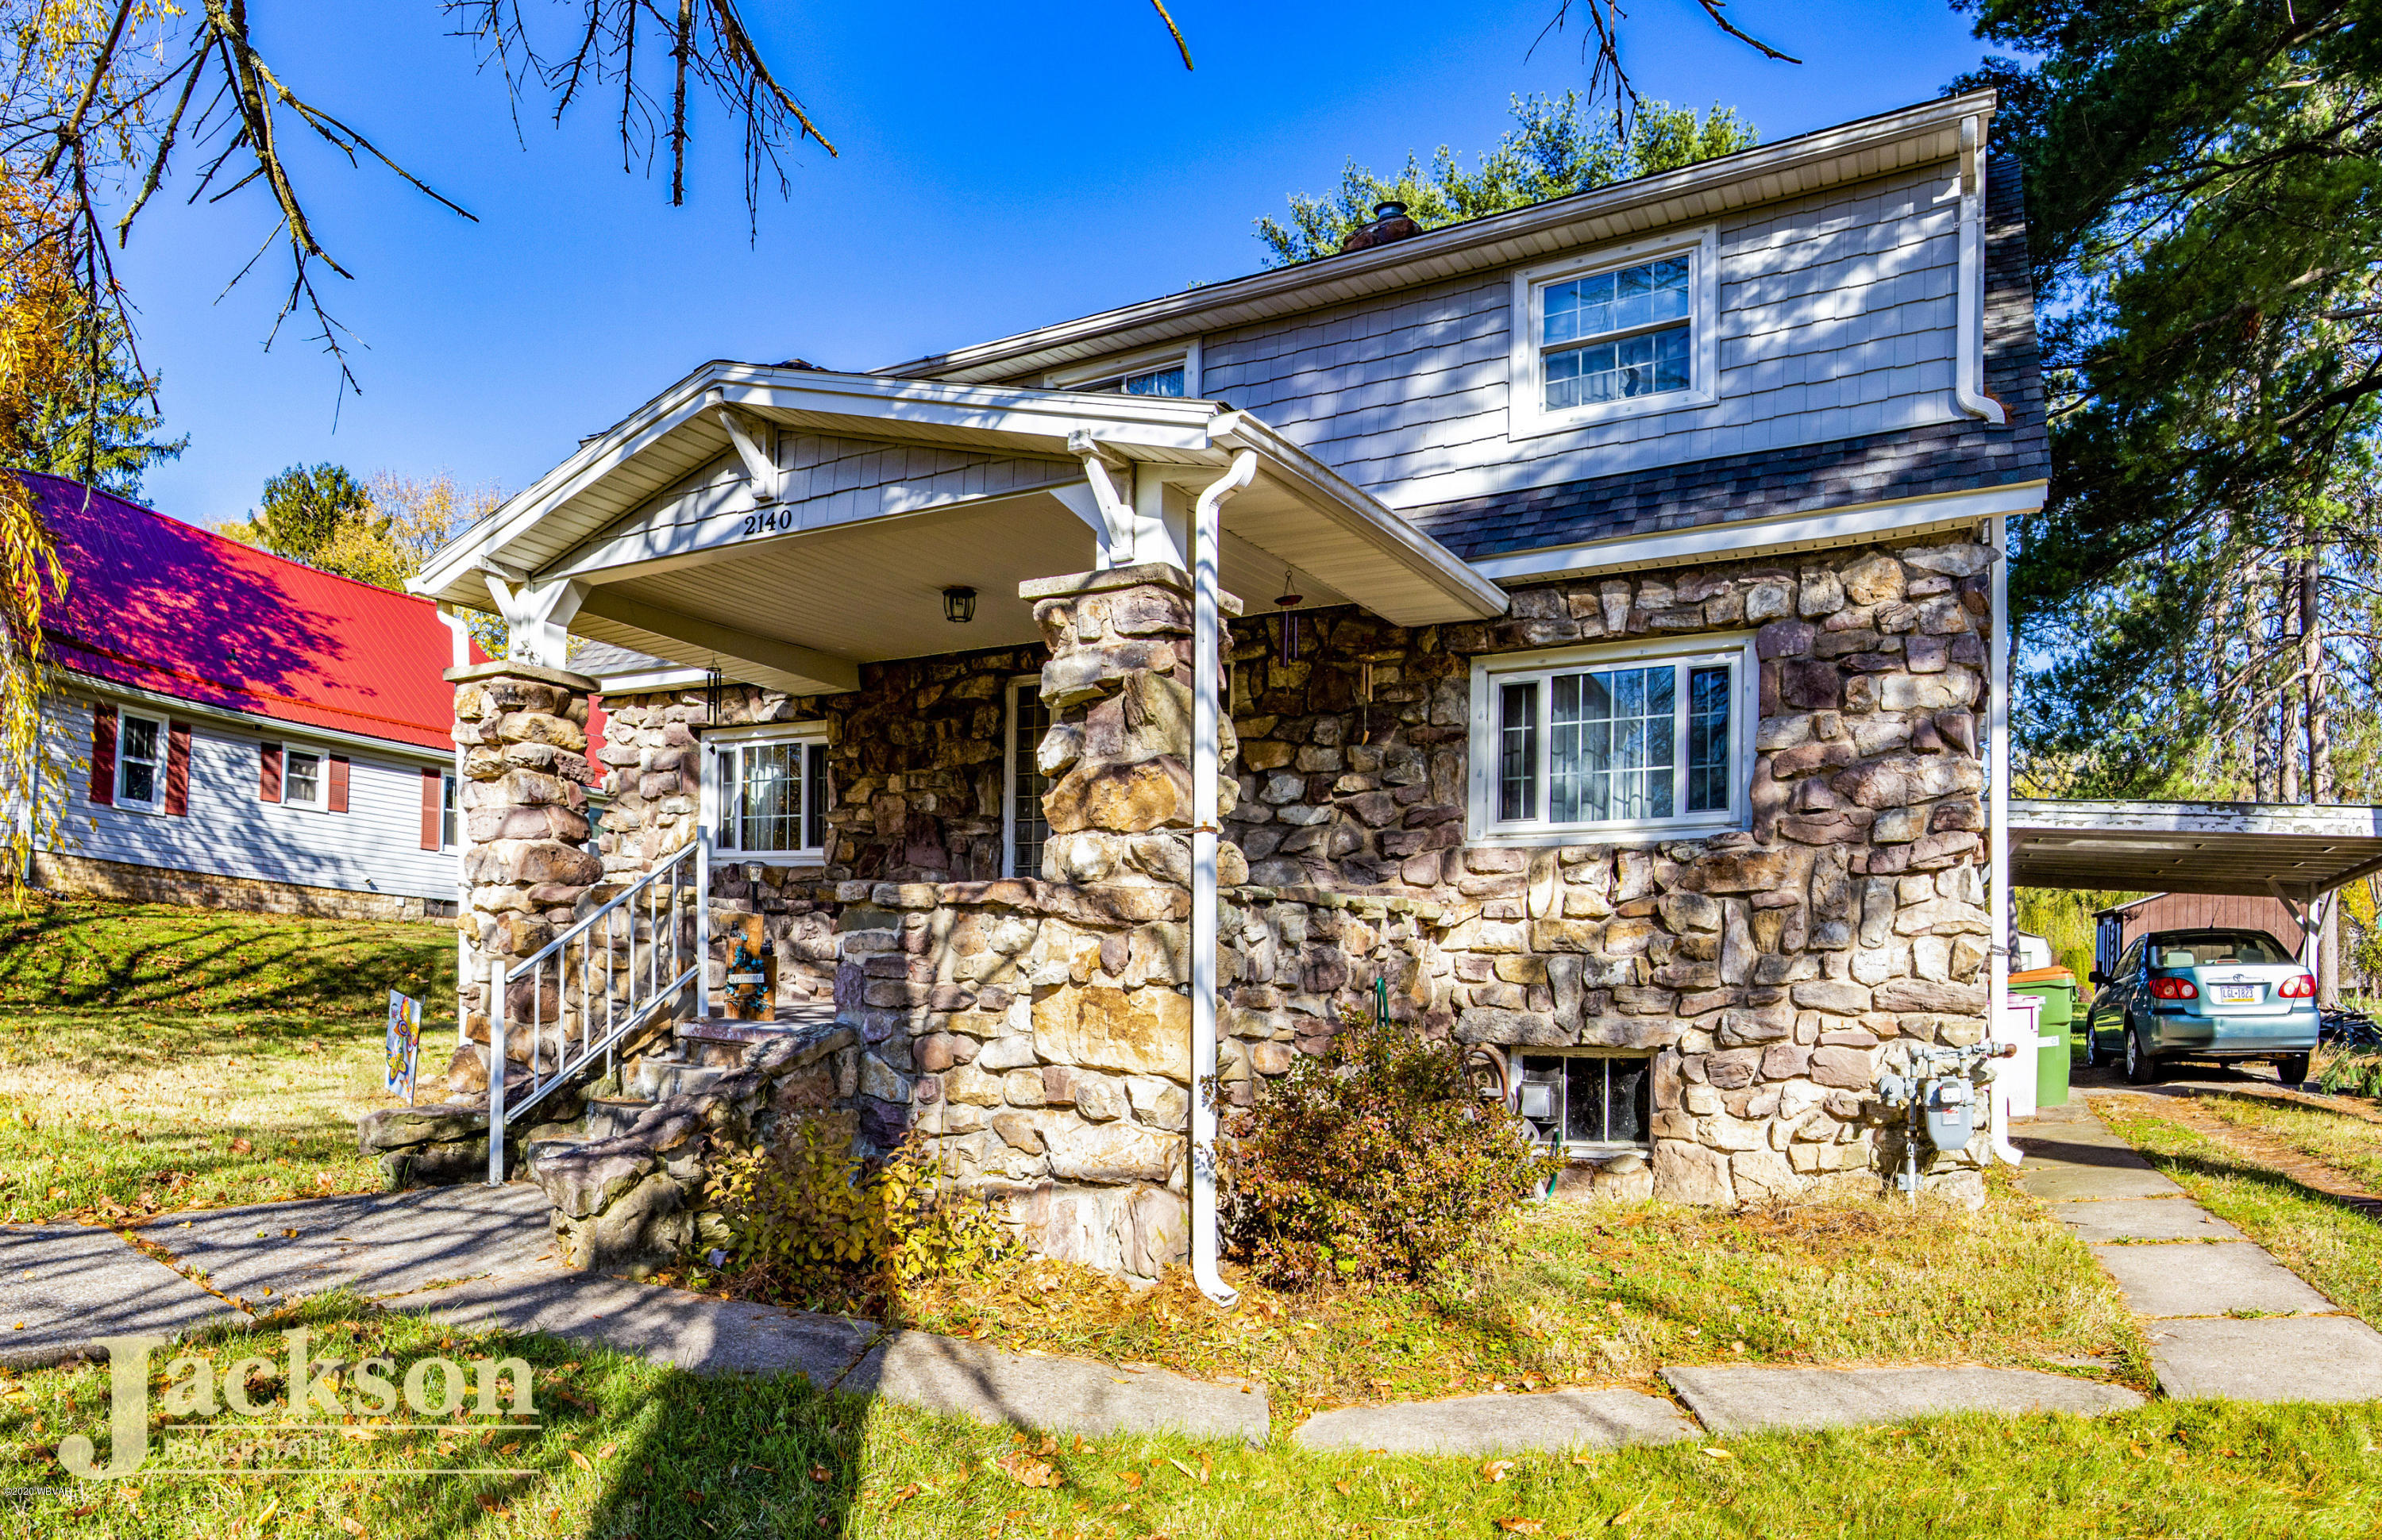 2140 ROOSEVELT AVENUE, Williamsport, PA 17701, 4 Bedrooms Bedrooms, ,1 BathroomBathrooms,Residential,For sale,ROOSEVELT,WB-91524